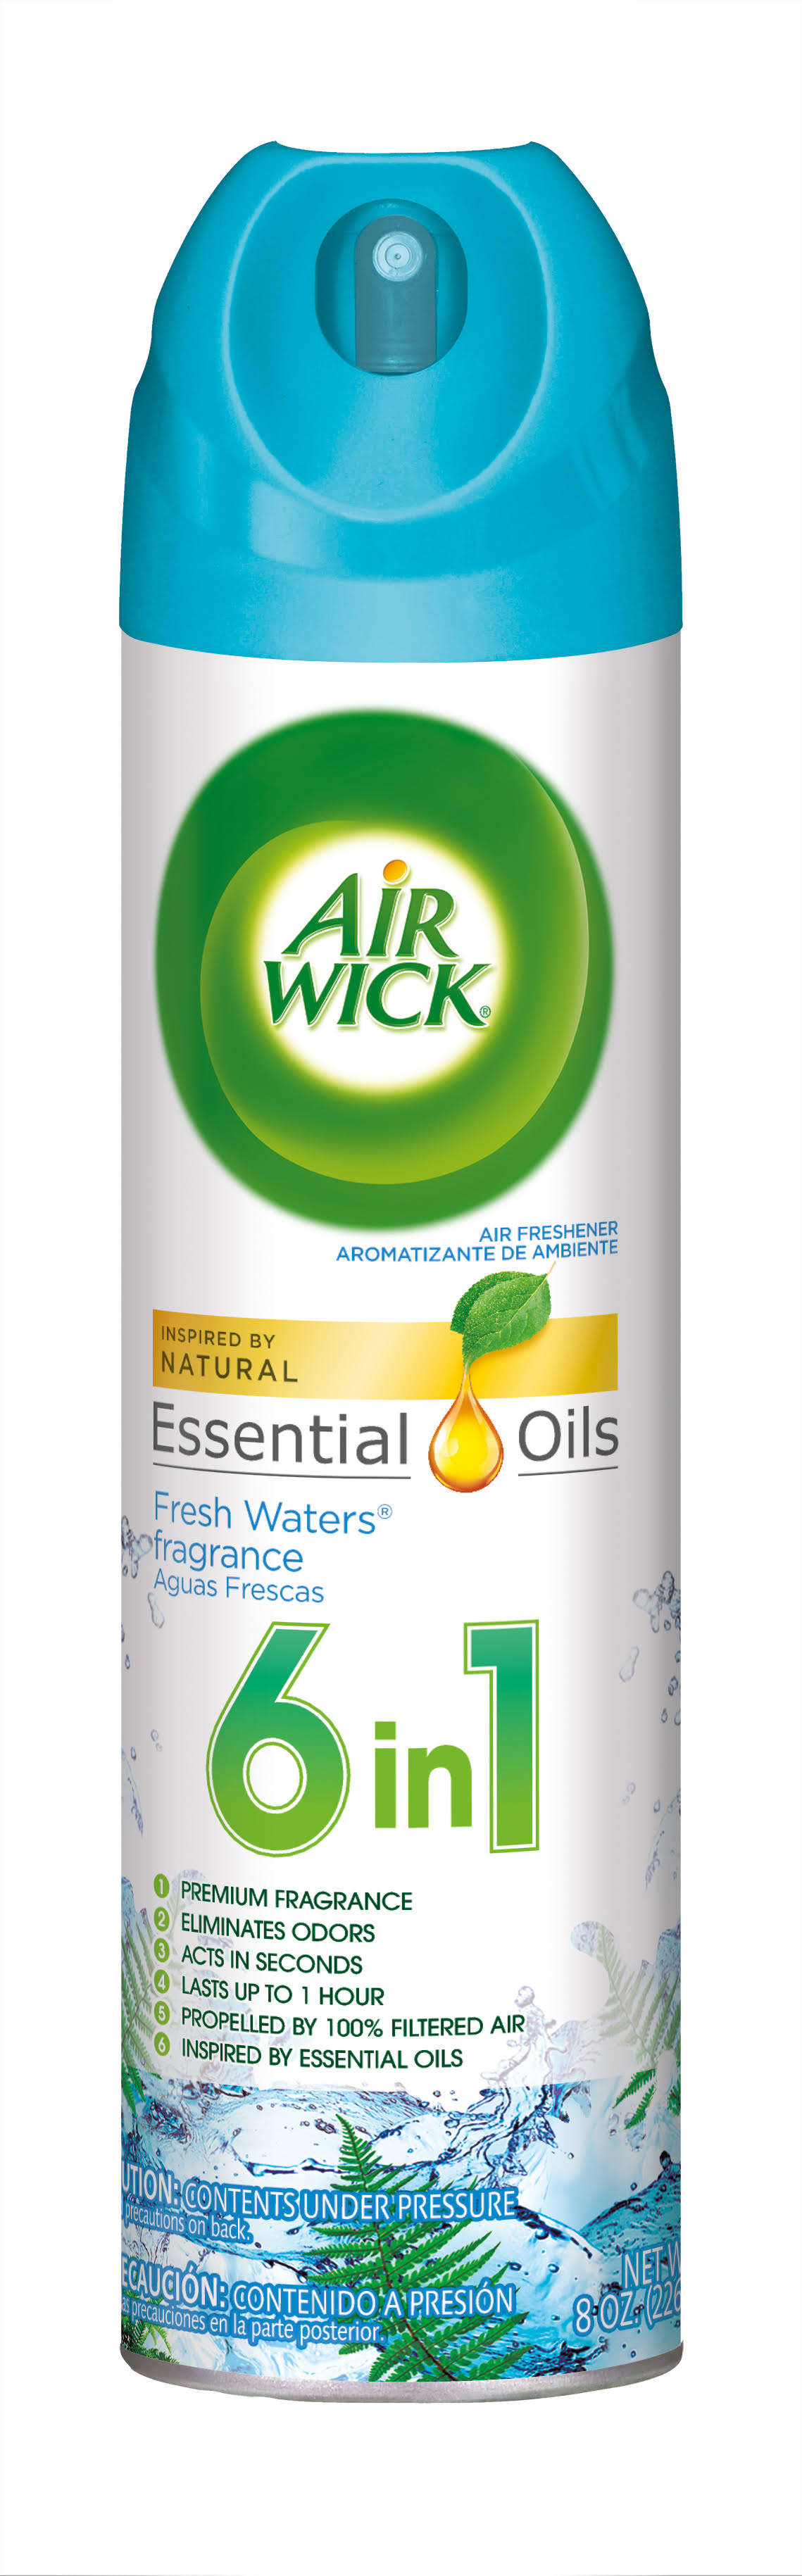 Air Wick Aerosol Spray Air Freshener - Fresh Waters